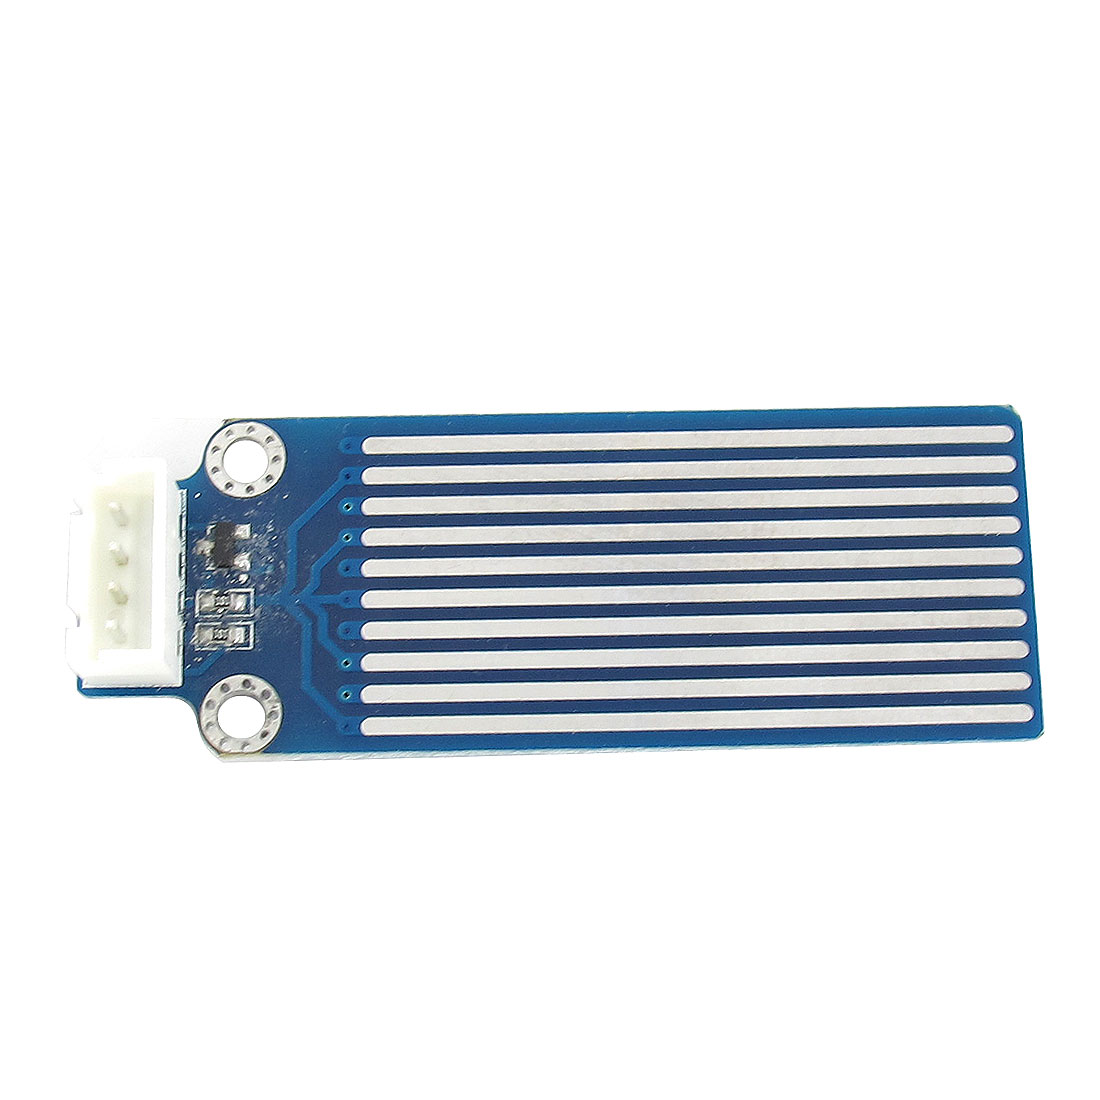 DC3.3V-5V 4-Pin JST-XH Male Plug Raindrop Water Level Detection Sensor Weather Sensitive Module PCB Board 60mm x 22mm